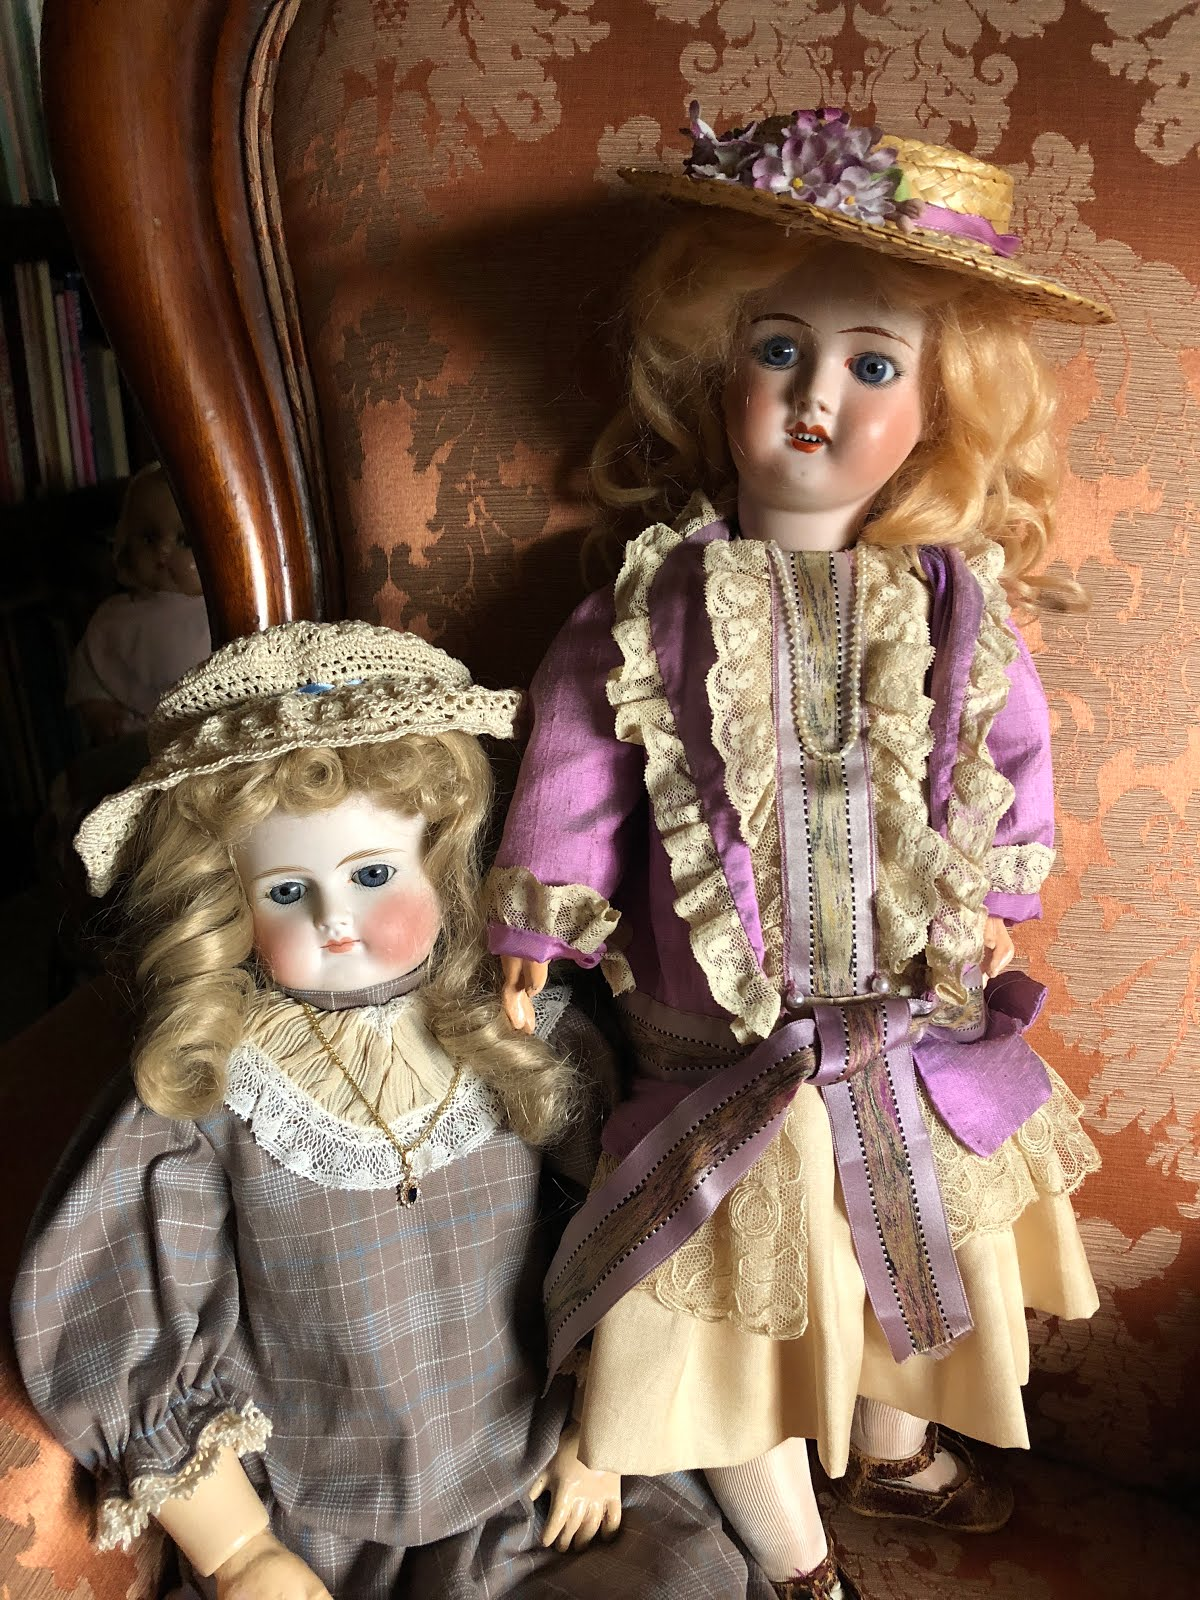 Two New Dollies